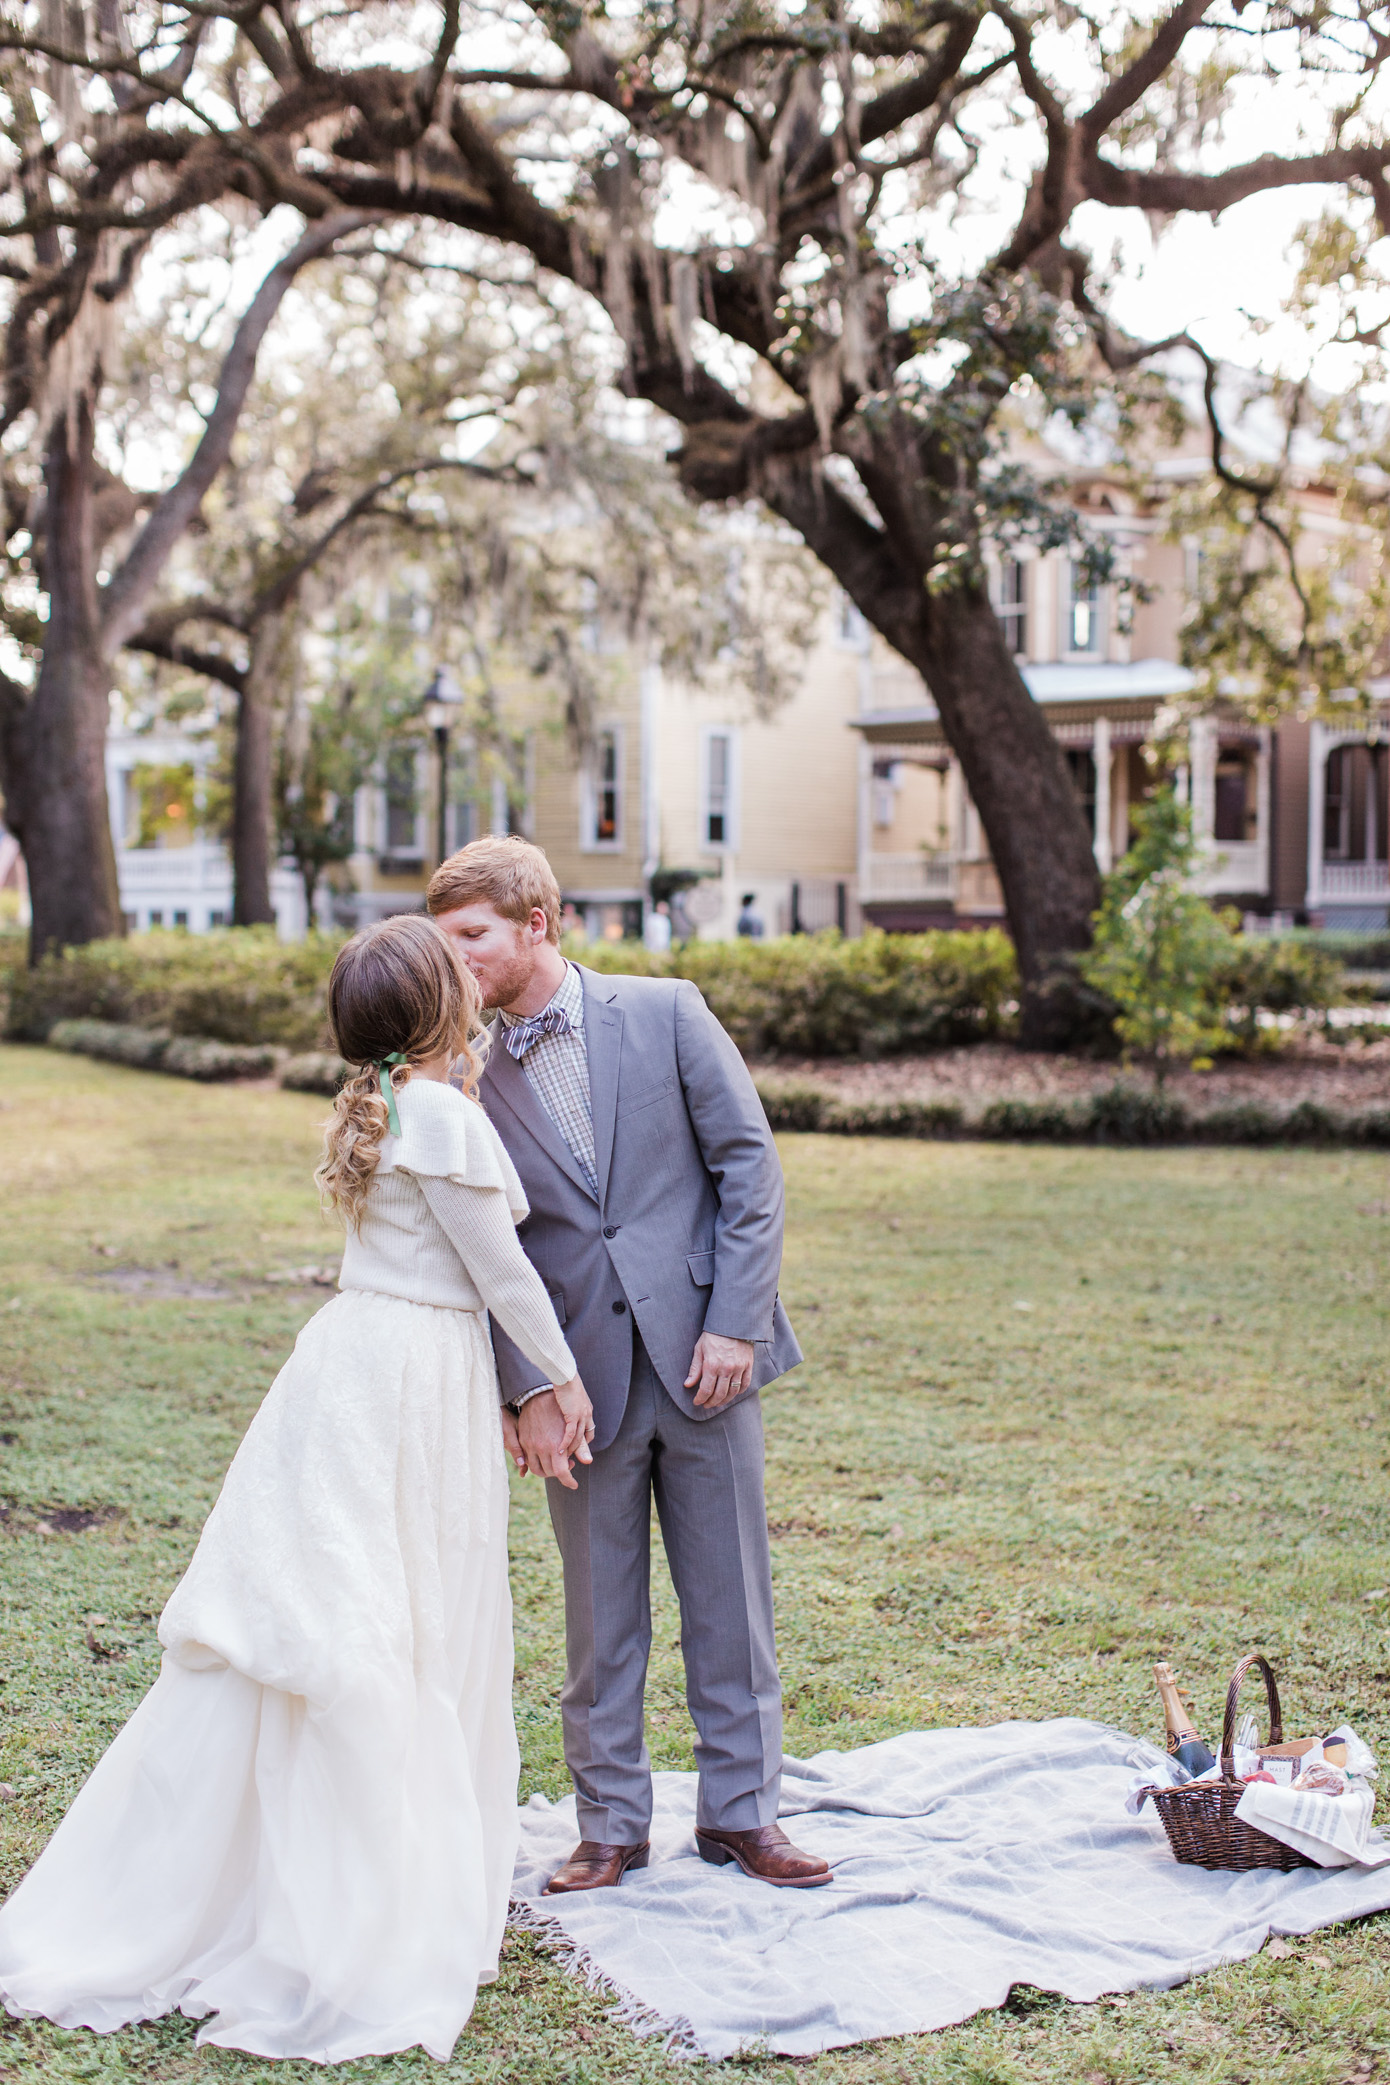 Savannah Picnic Anniversary Photos | Couple Christmas Photos | Louella Reese Life & Style Blog